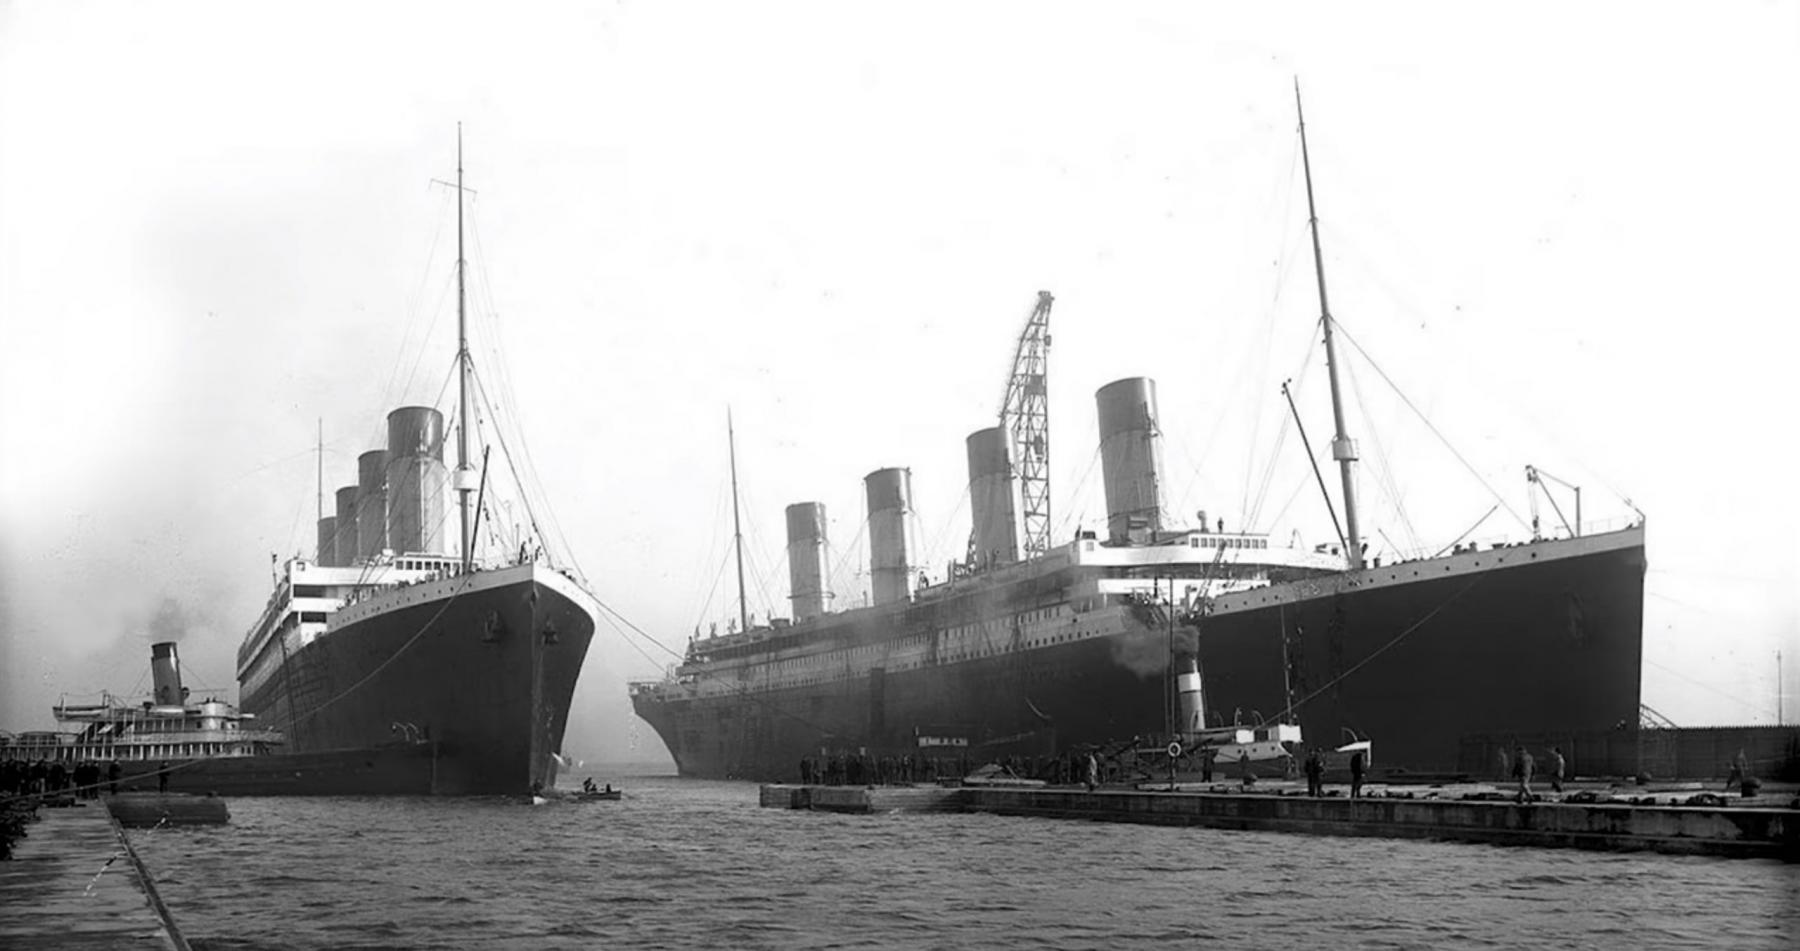 The twins Olympic (L) and Titanic (R). This is the last photo of the two vessels together.